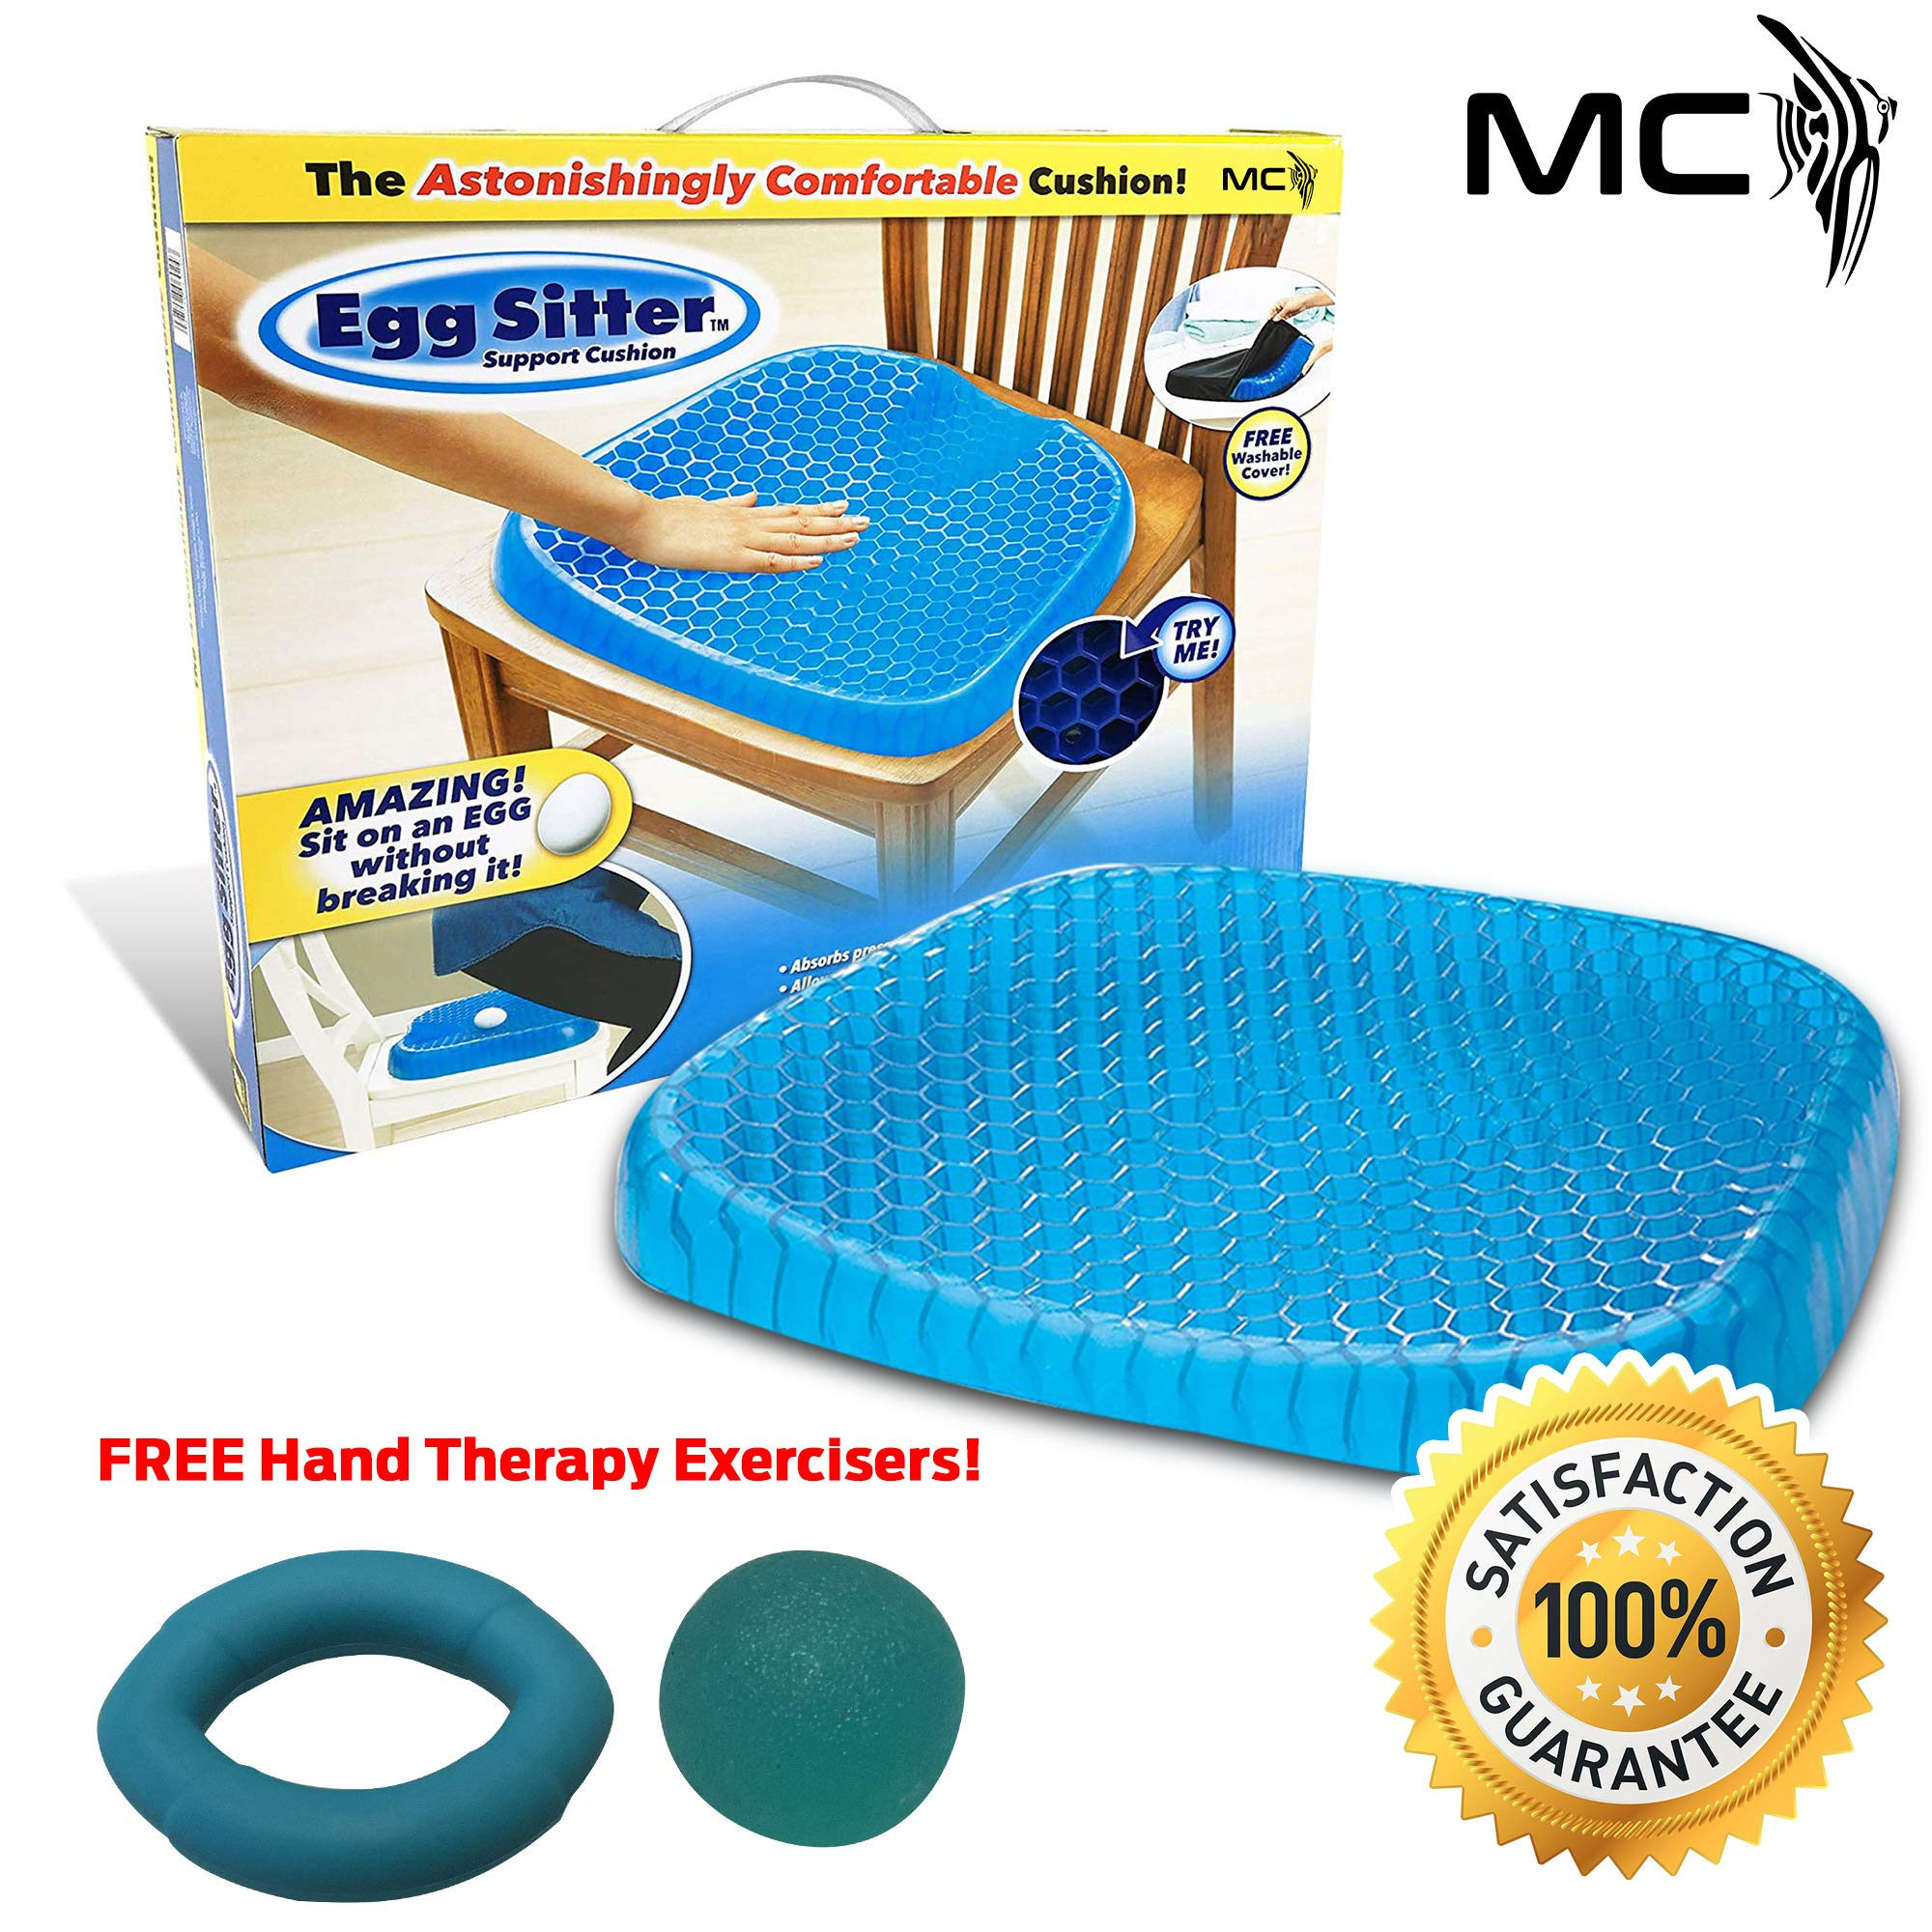 Egg Sitter Seat Cushion with Non-Slip Cover Breathable Most Comfortable Multipurpose High Quality Honeycomb Design Absorbs Pressure Points, 2 Free Gifts by Moral Chase